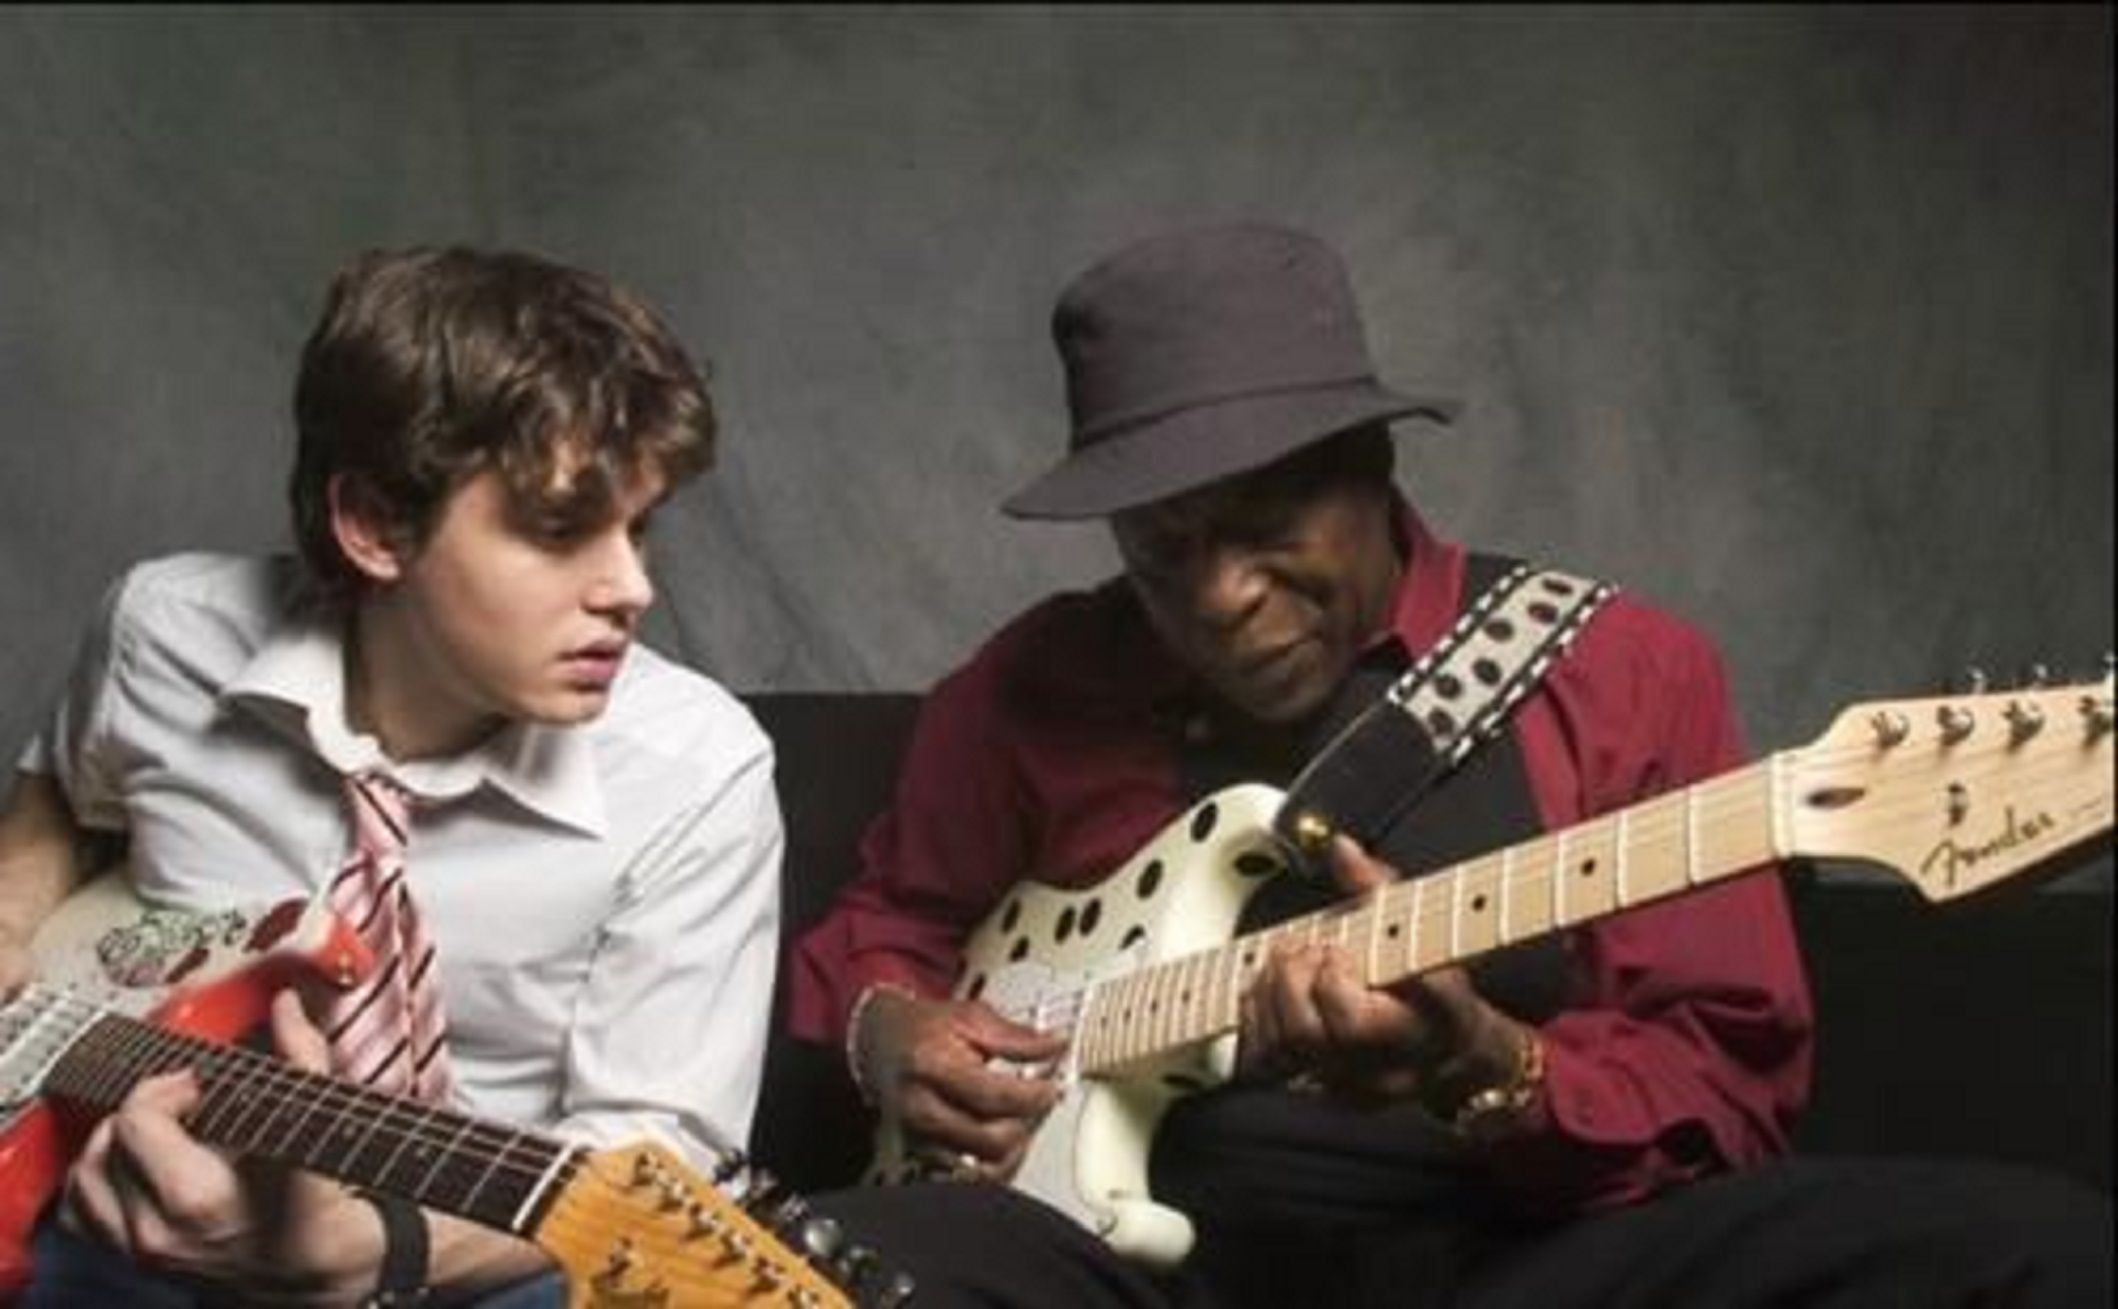 Buddy Guy John Mayer What Kind Of Woman Is This Buddy Guy John Mayer John